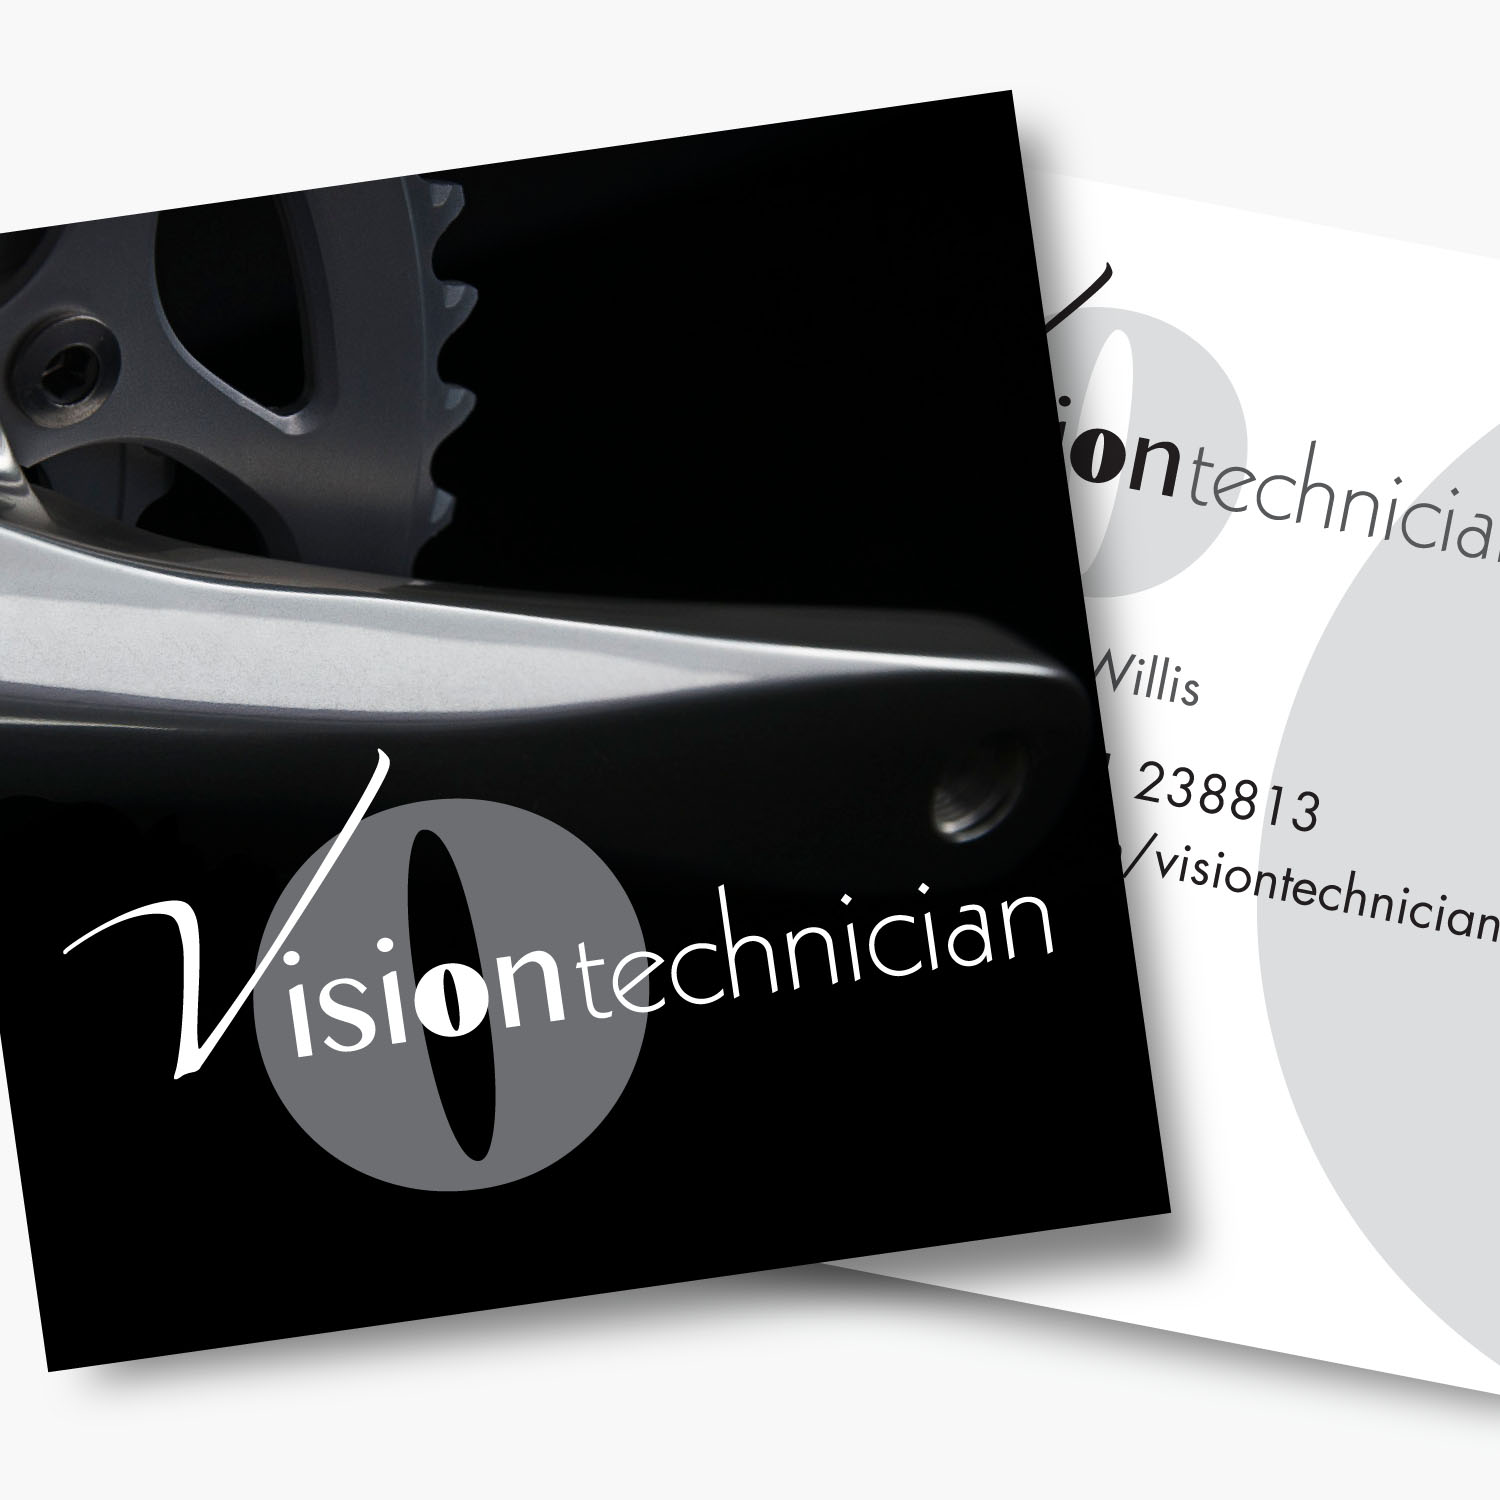 Brand identity and business stationery for Vision Technician